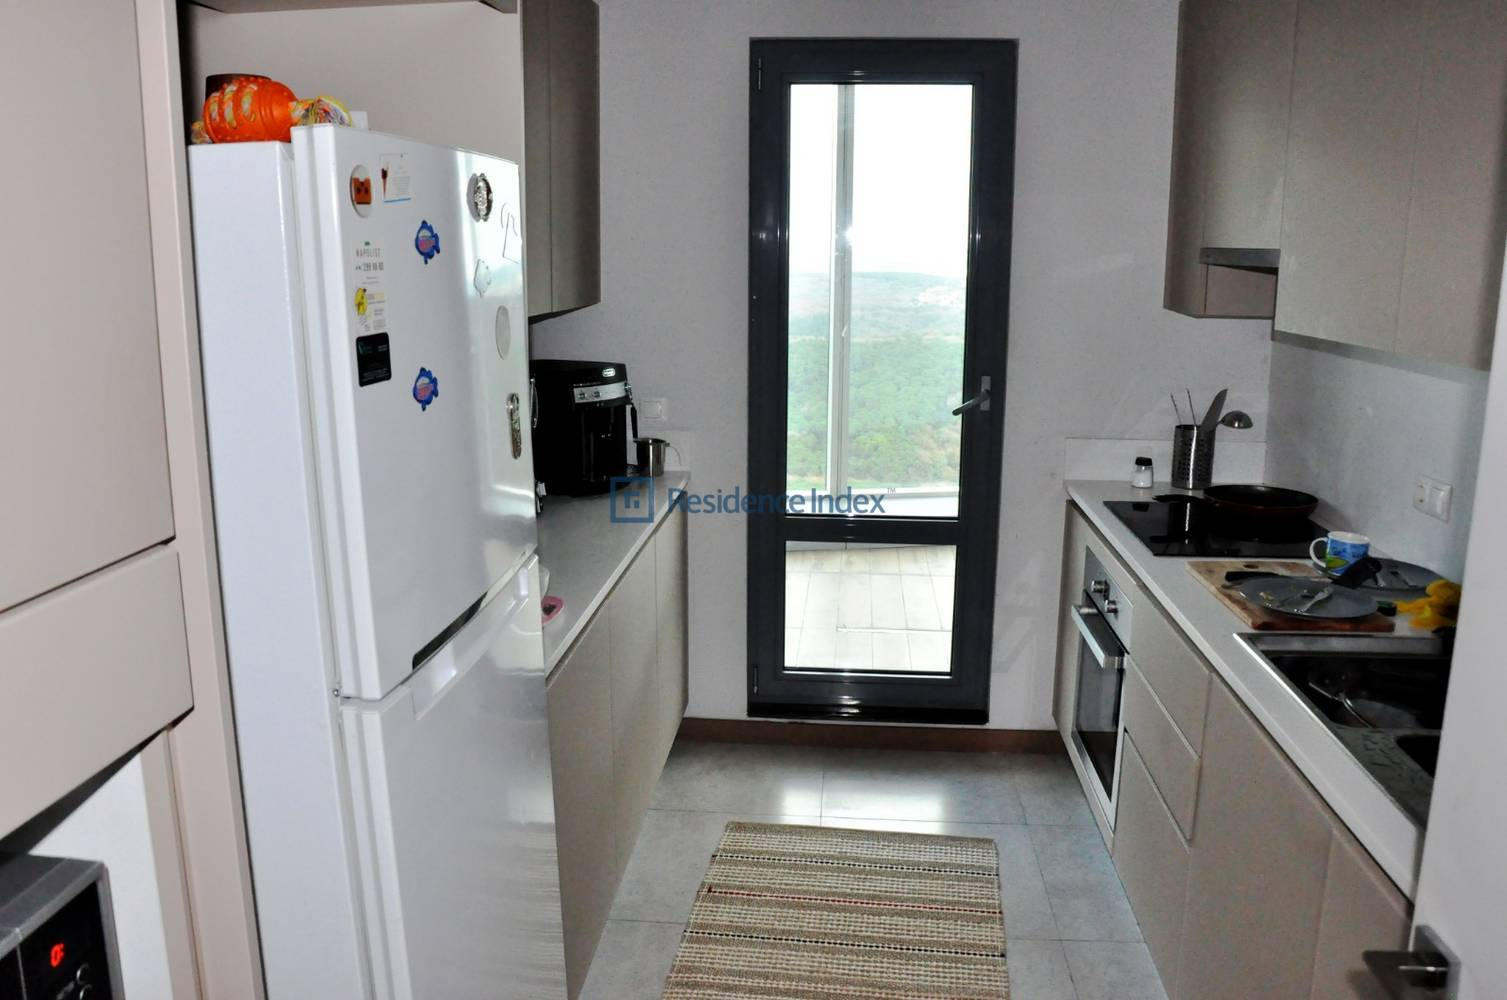 It is appropriatefor Citizenship 2 + 1 apartment for sale in Maslak